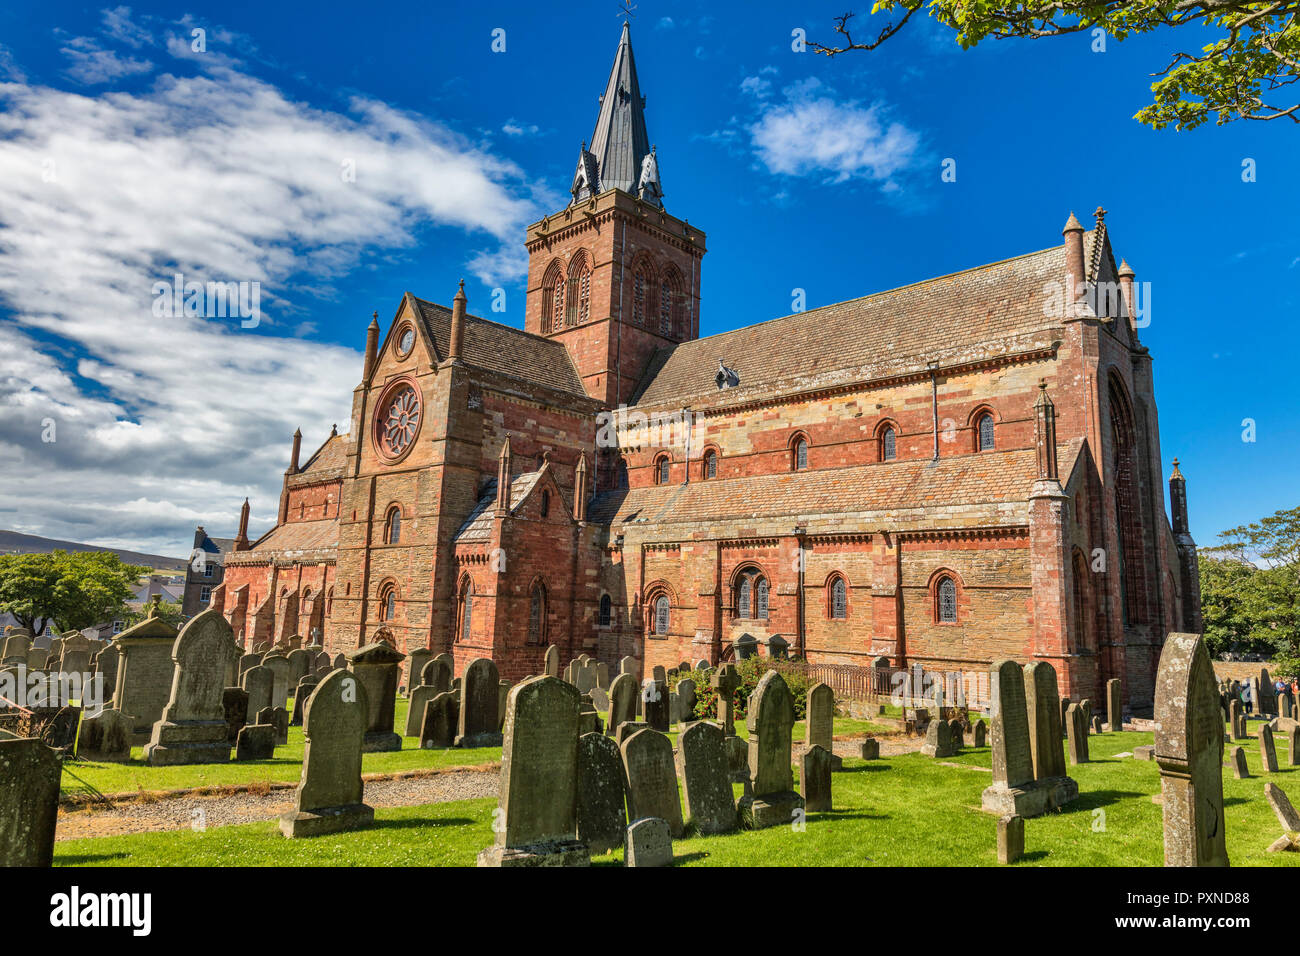 St. Magnus Cathedral, Kirkwall, Mainland, Orkney islands, Scotland, UK - Stock Image